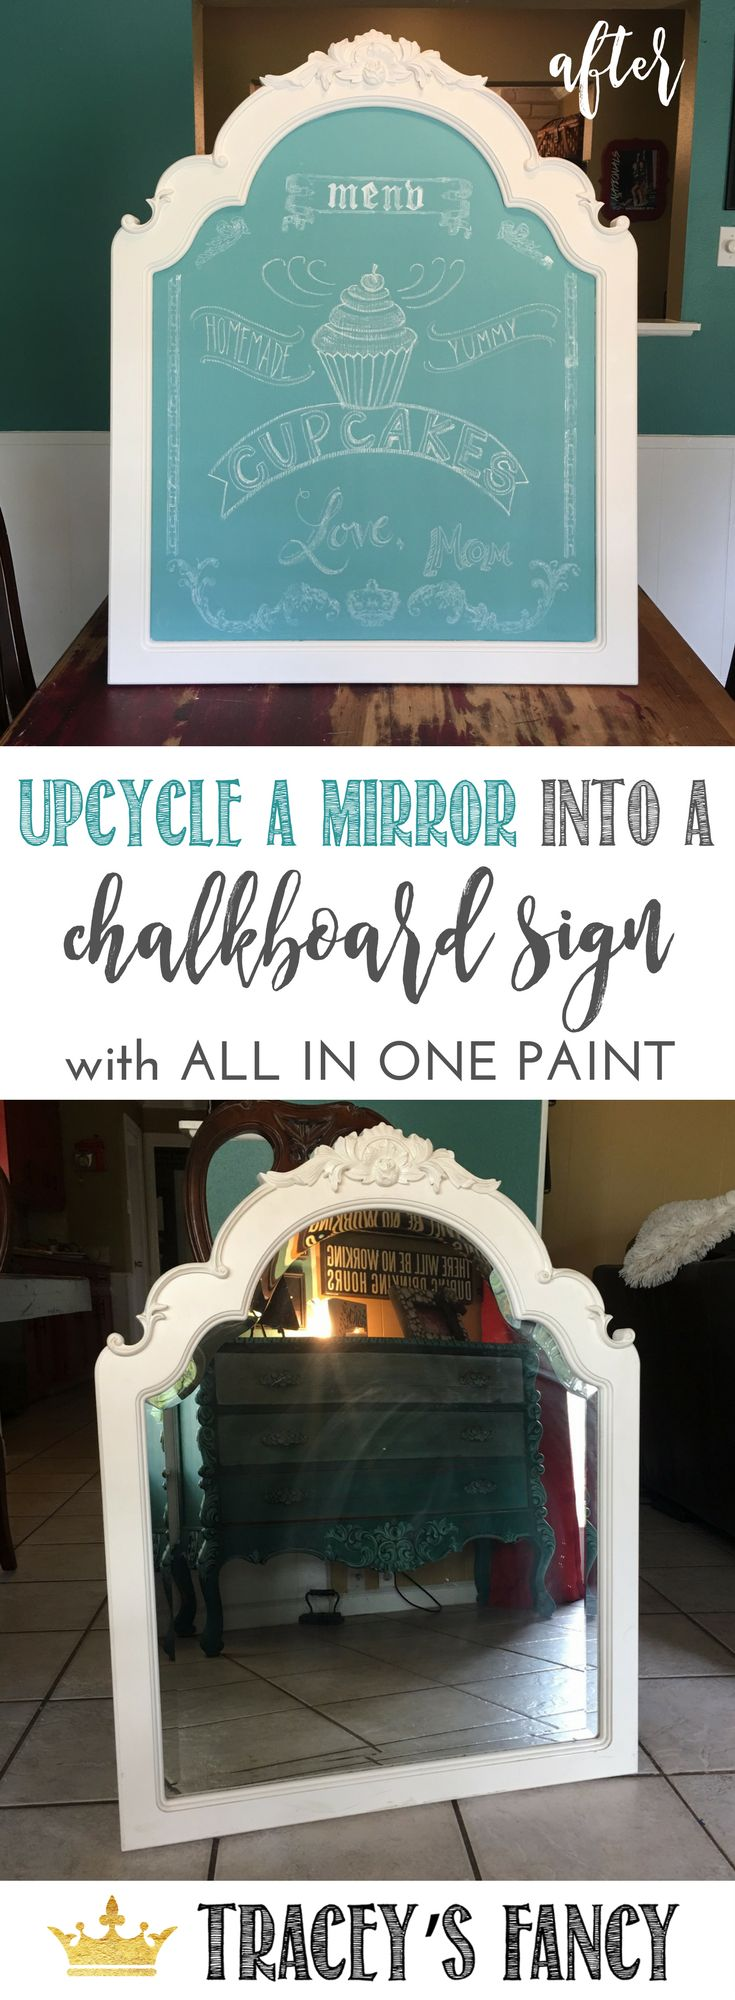 Upcycle a Mirror into a chalkboard sign - great for chalkboard menus and wall art. Furniture Painting Tips by TraceysFancy | DIY Chalkboard projects | Upcycled Projects | Gift Ideas | What to do with leftover mirrors | Repurposed Furniture Ideas | Furniture Flips